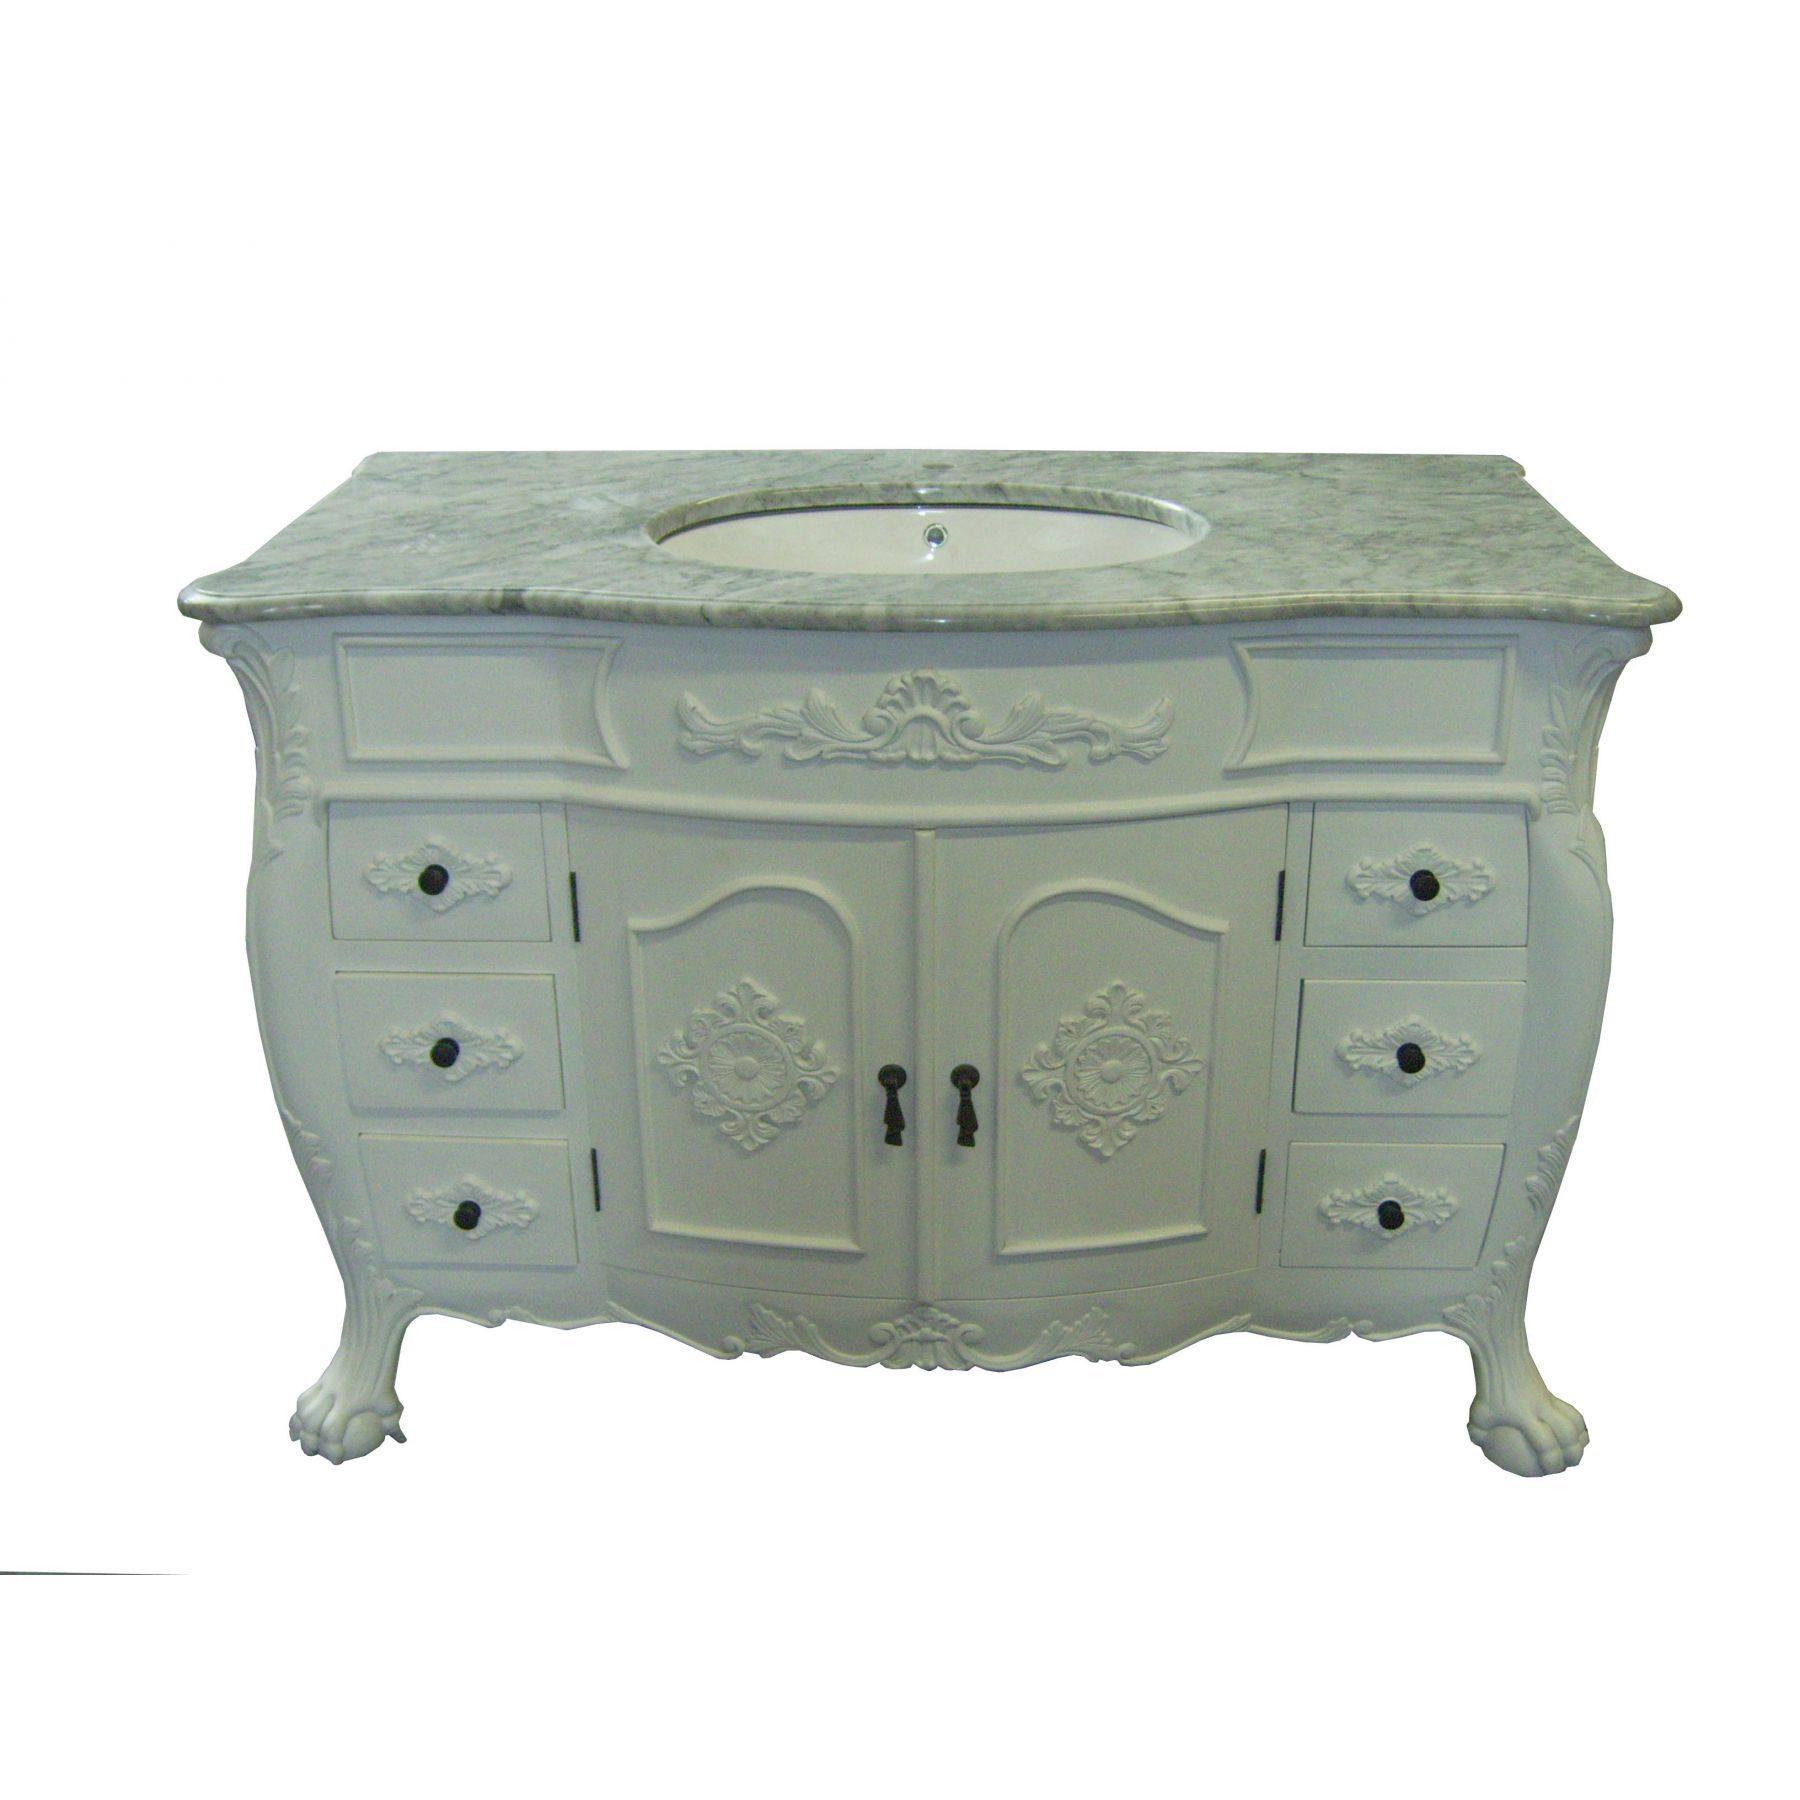 vintage looking bathroom vanity. French Style Bathroom Vanity Units Uk  antique french vanity unit photomoskoo com